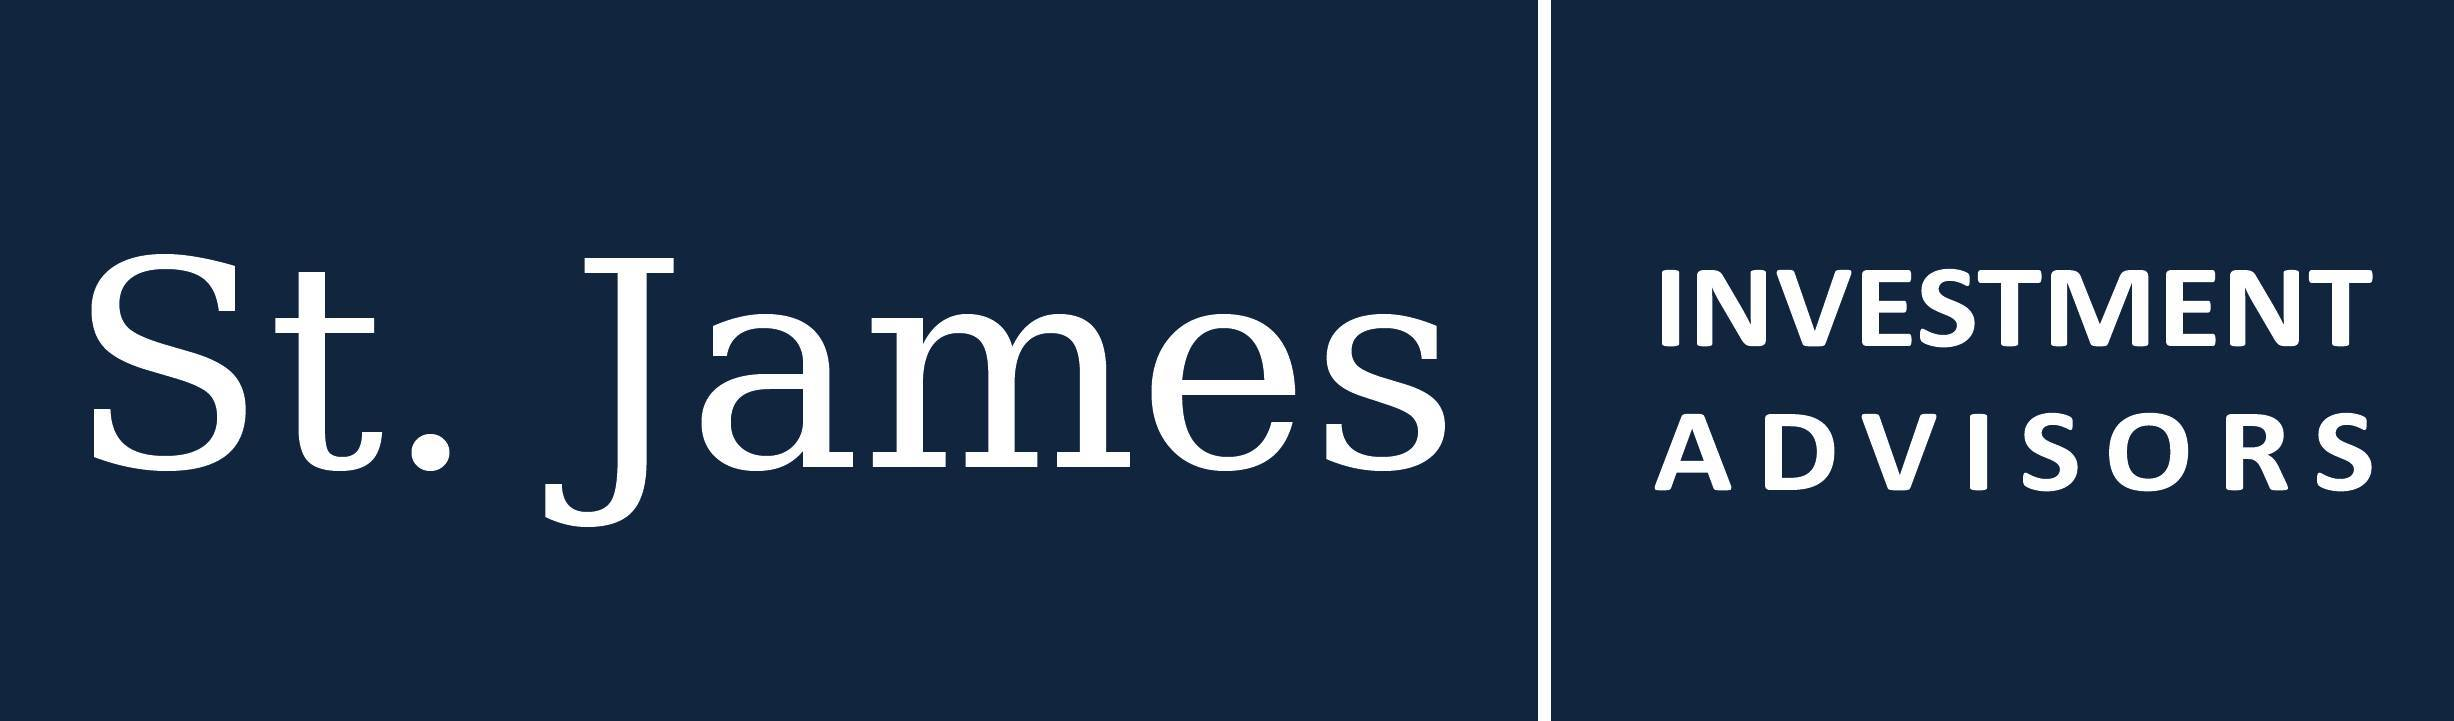 St. James Investment Advisors